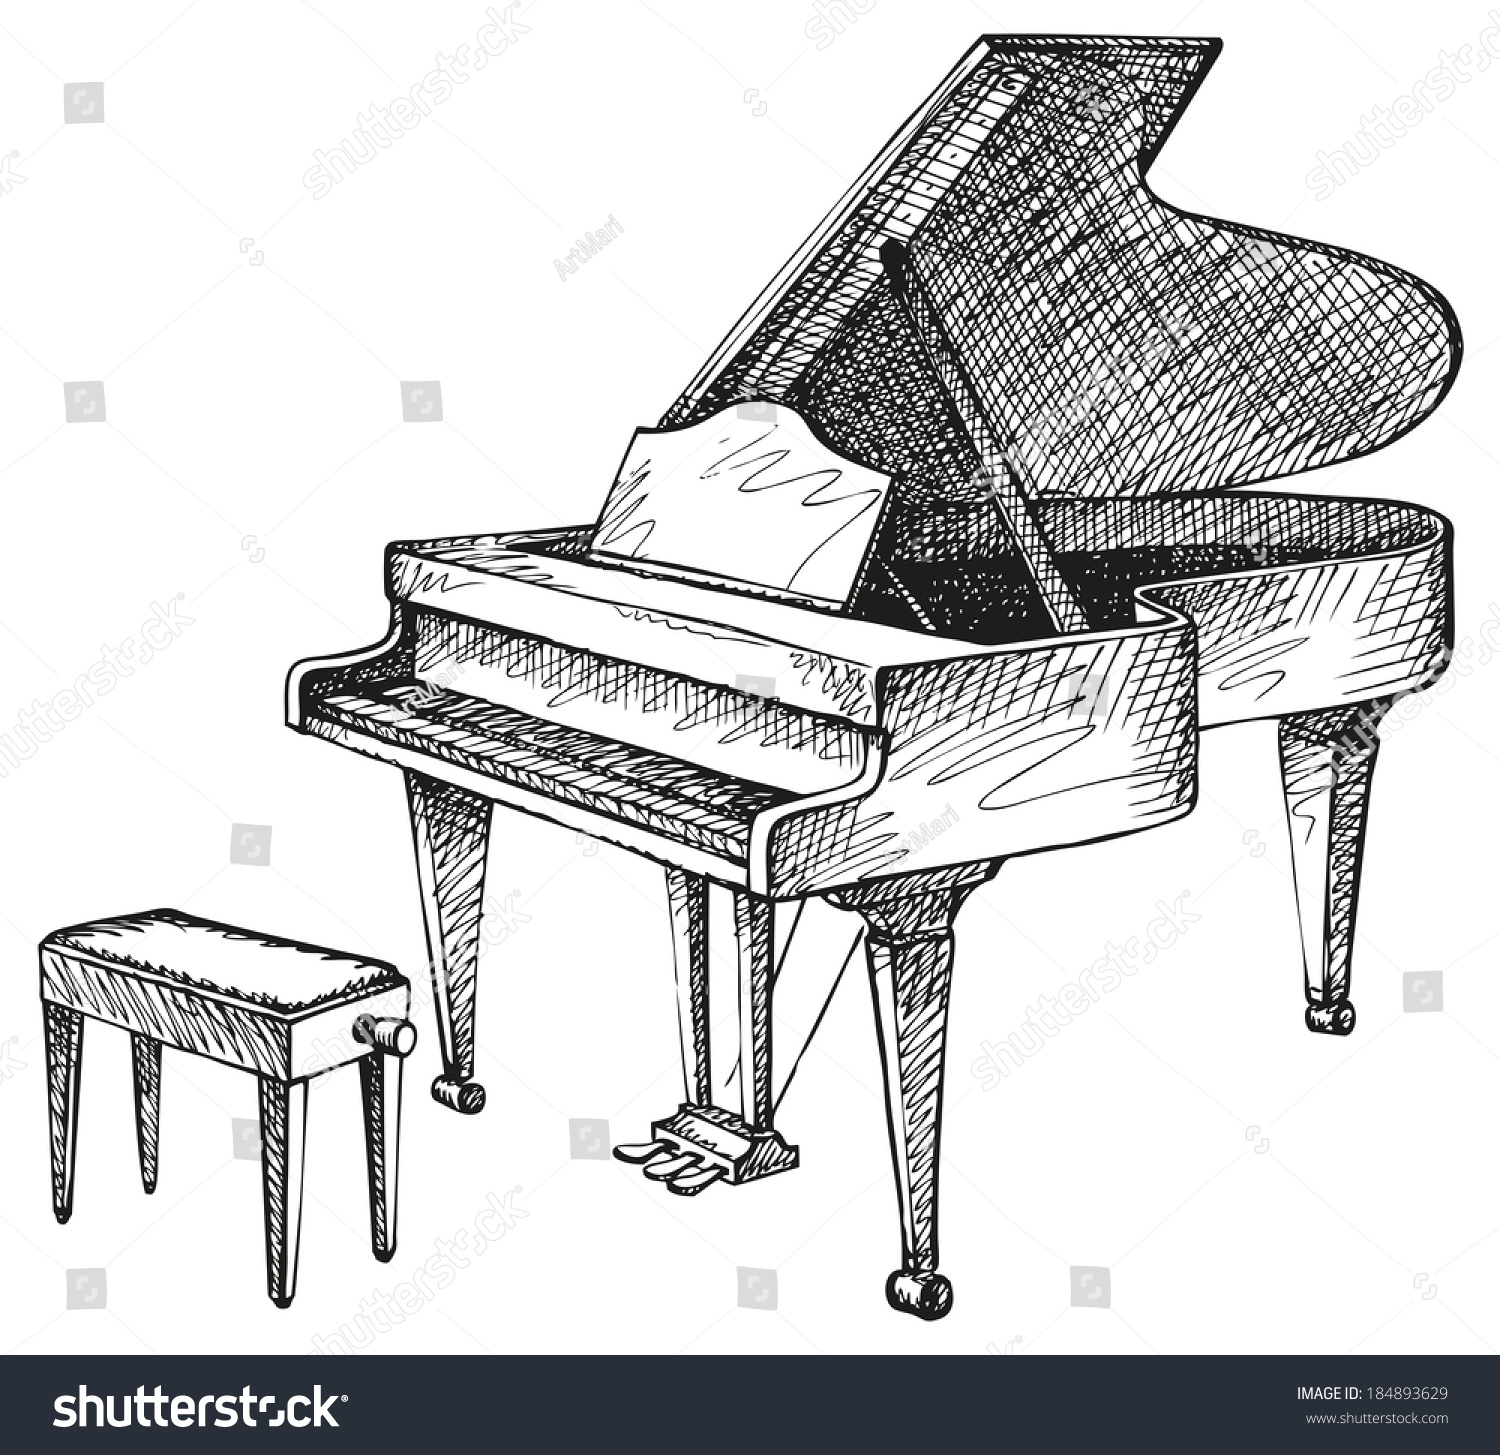 Vector Freehand Drawing Open Grand Piano Stock Vector 184893629 - Shutterstock